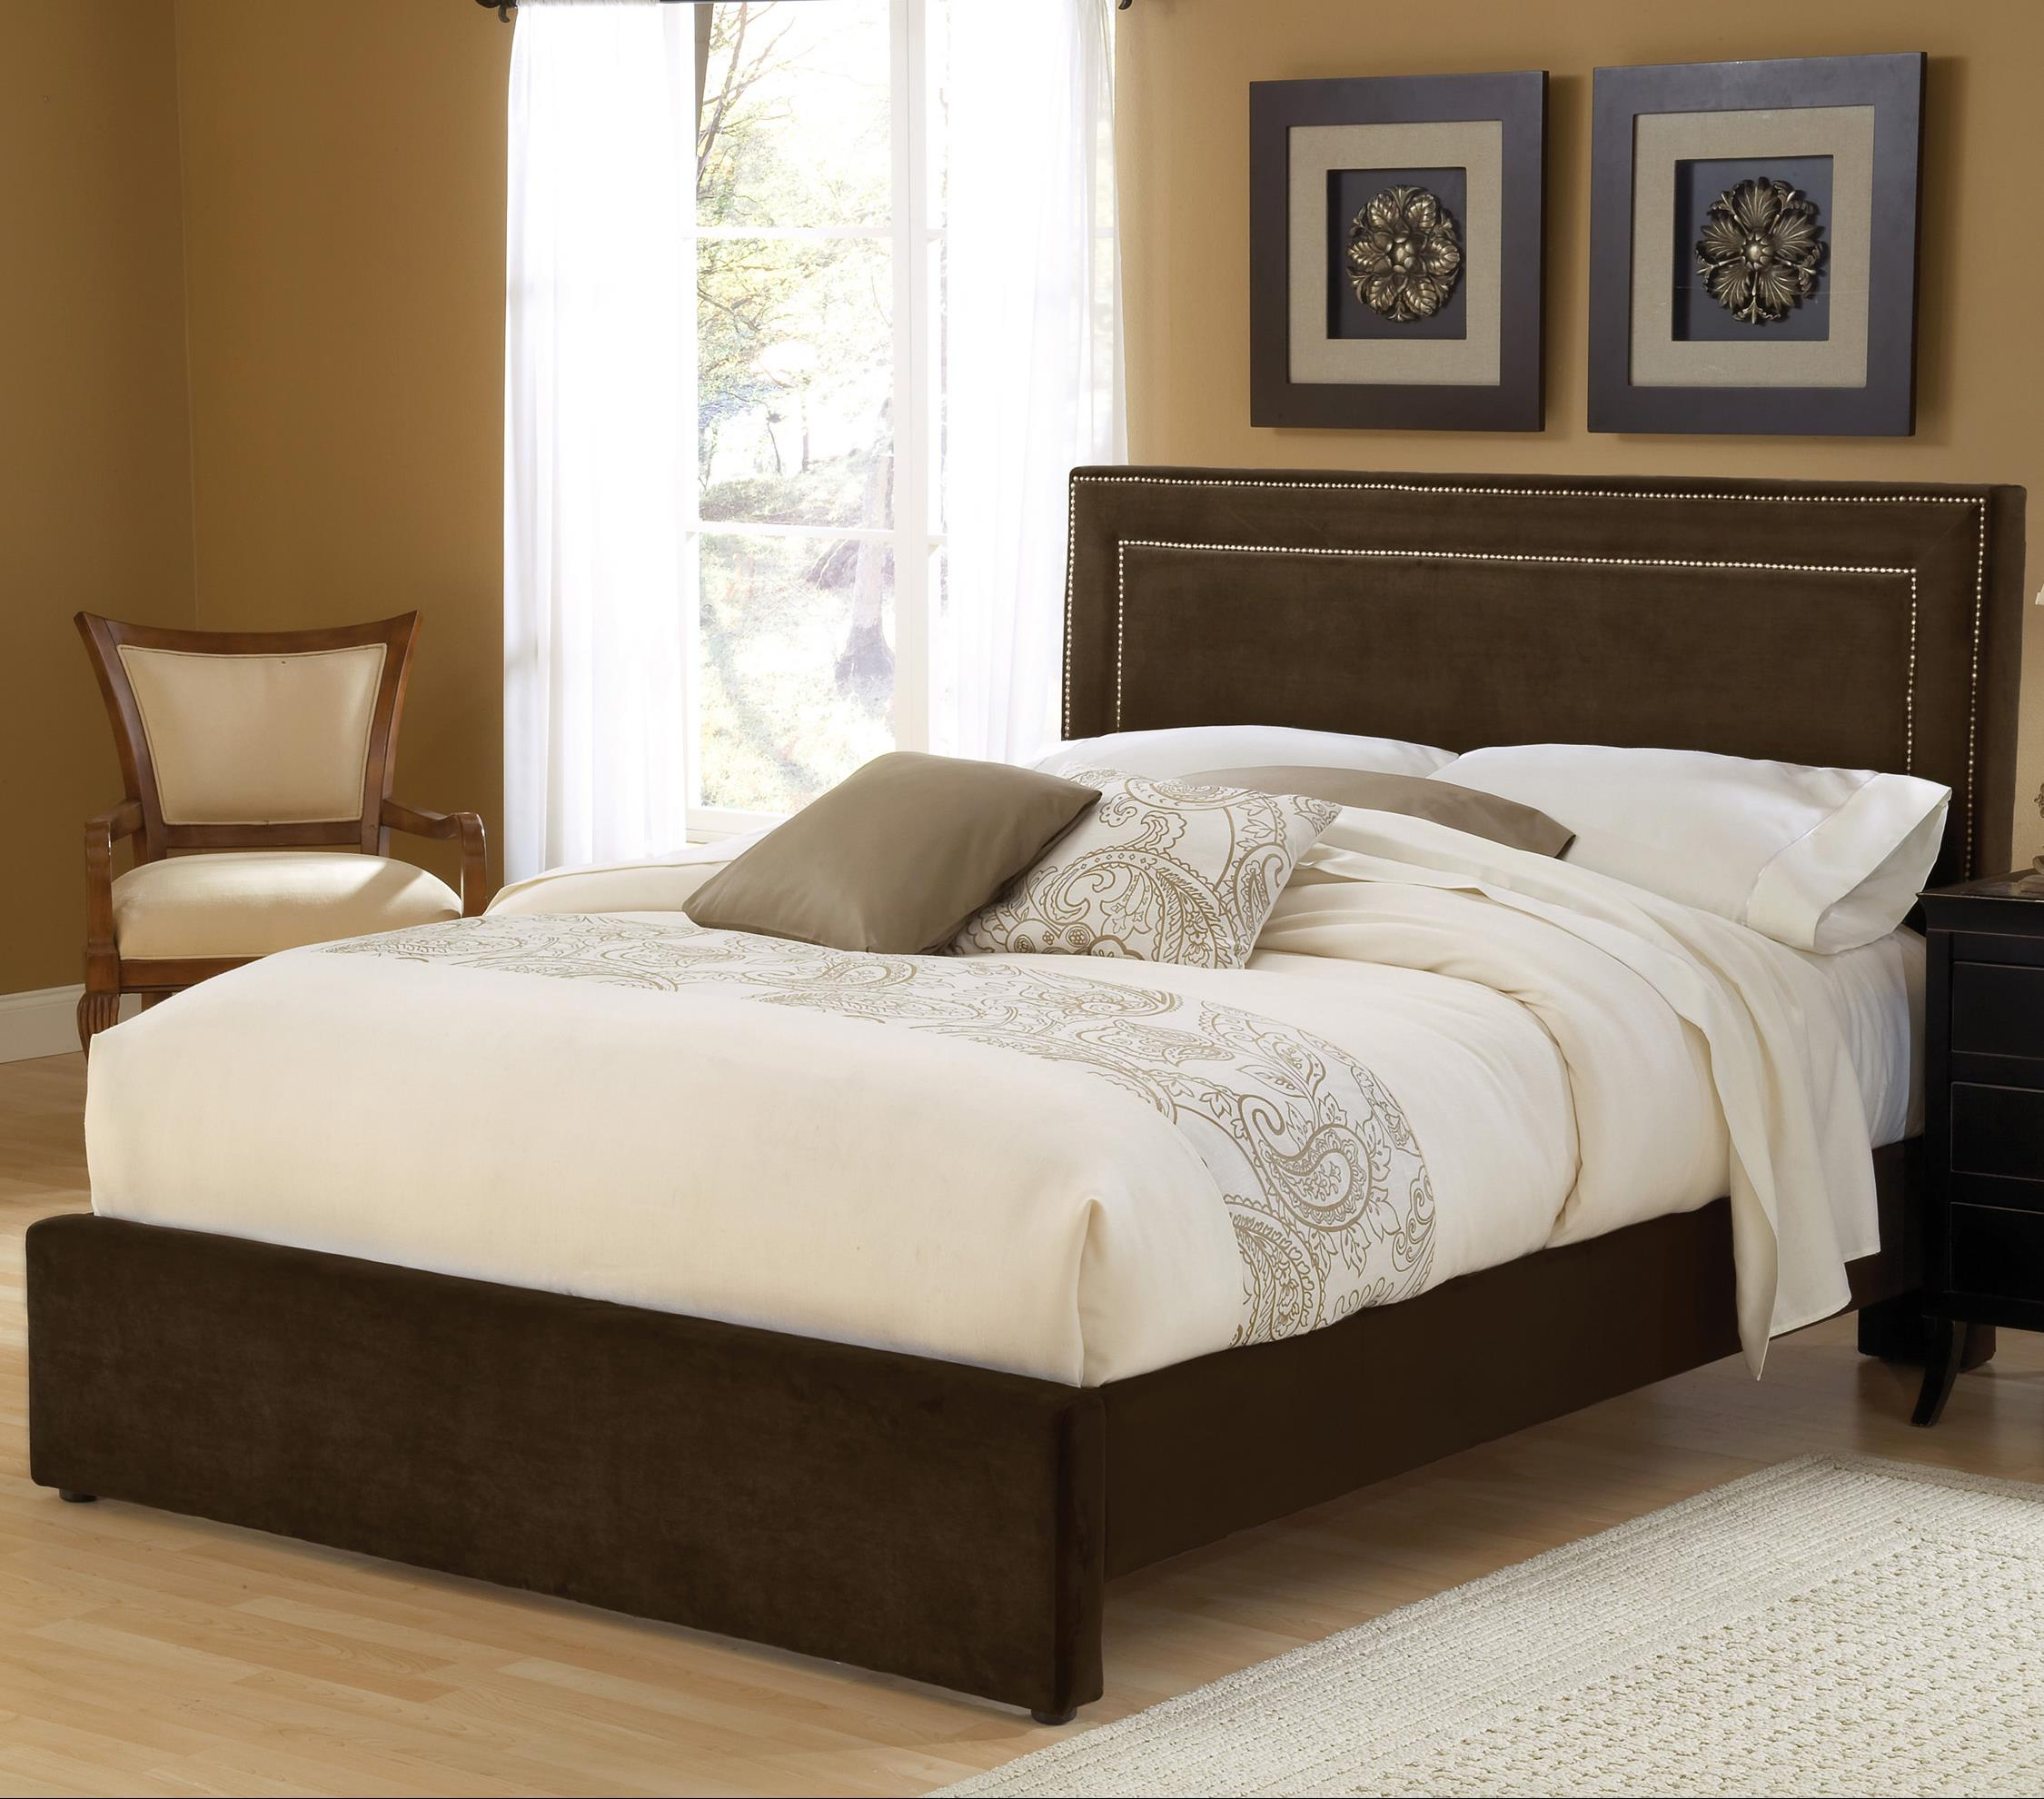 Hillsdale Amber Chocolate Cal King Bed Set with Rails - Item Number: 1554BCKRA